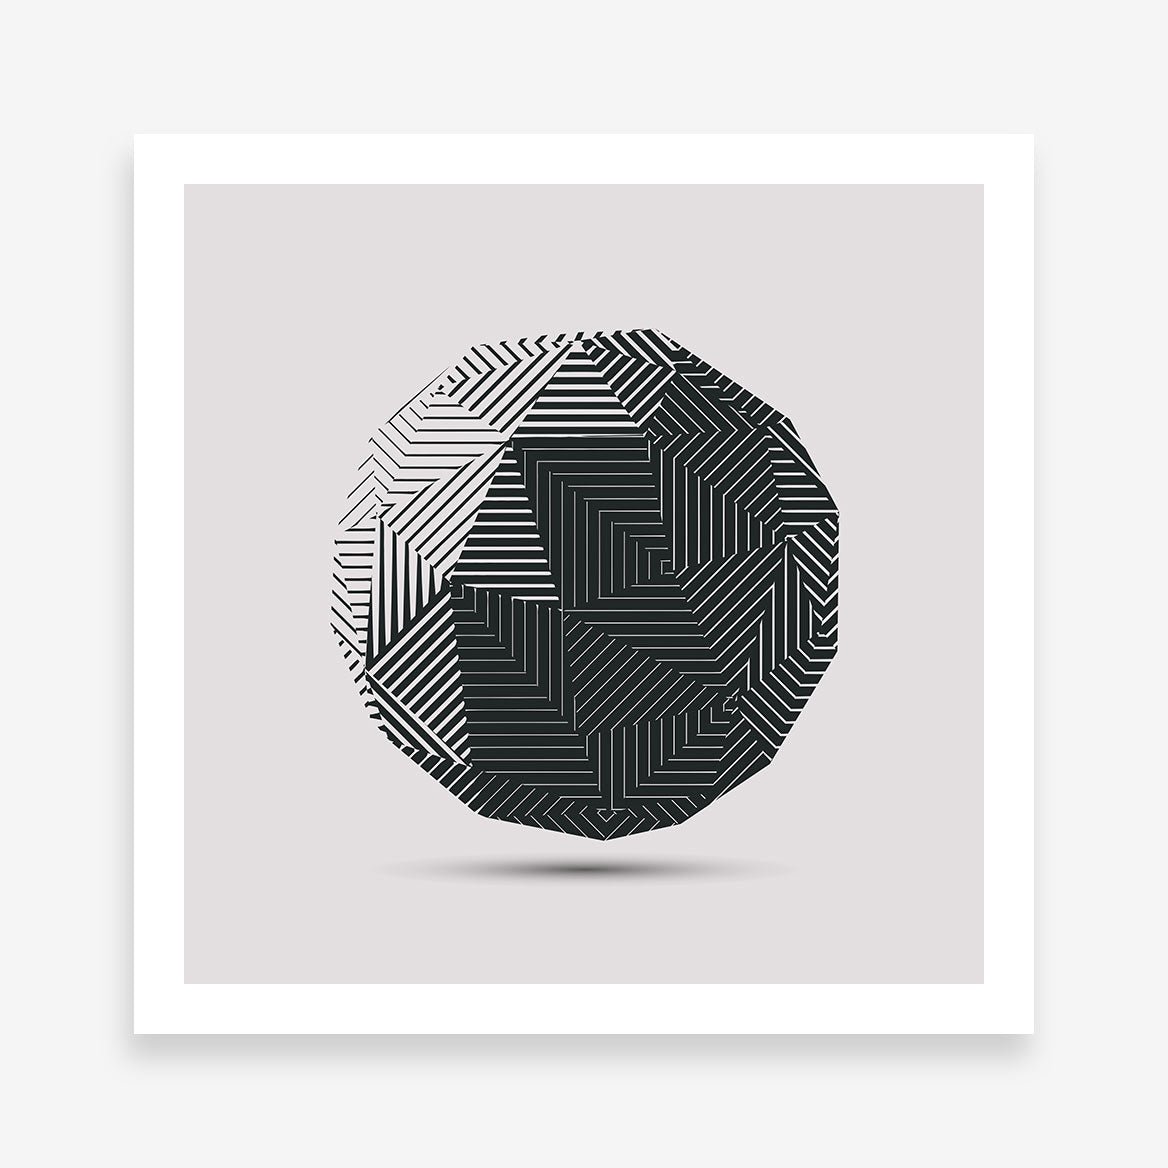 Geometric poster print 3D dark grey ball, on light grey background.